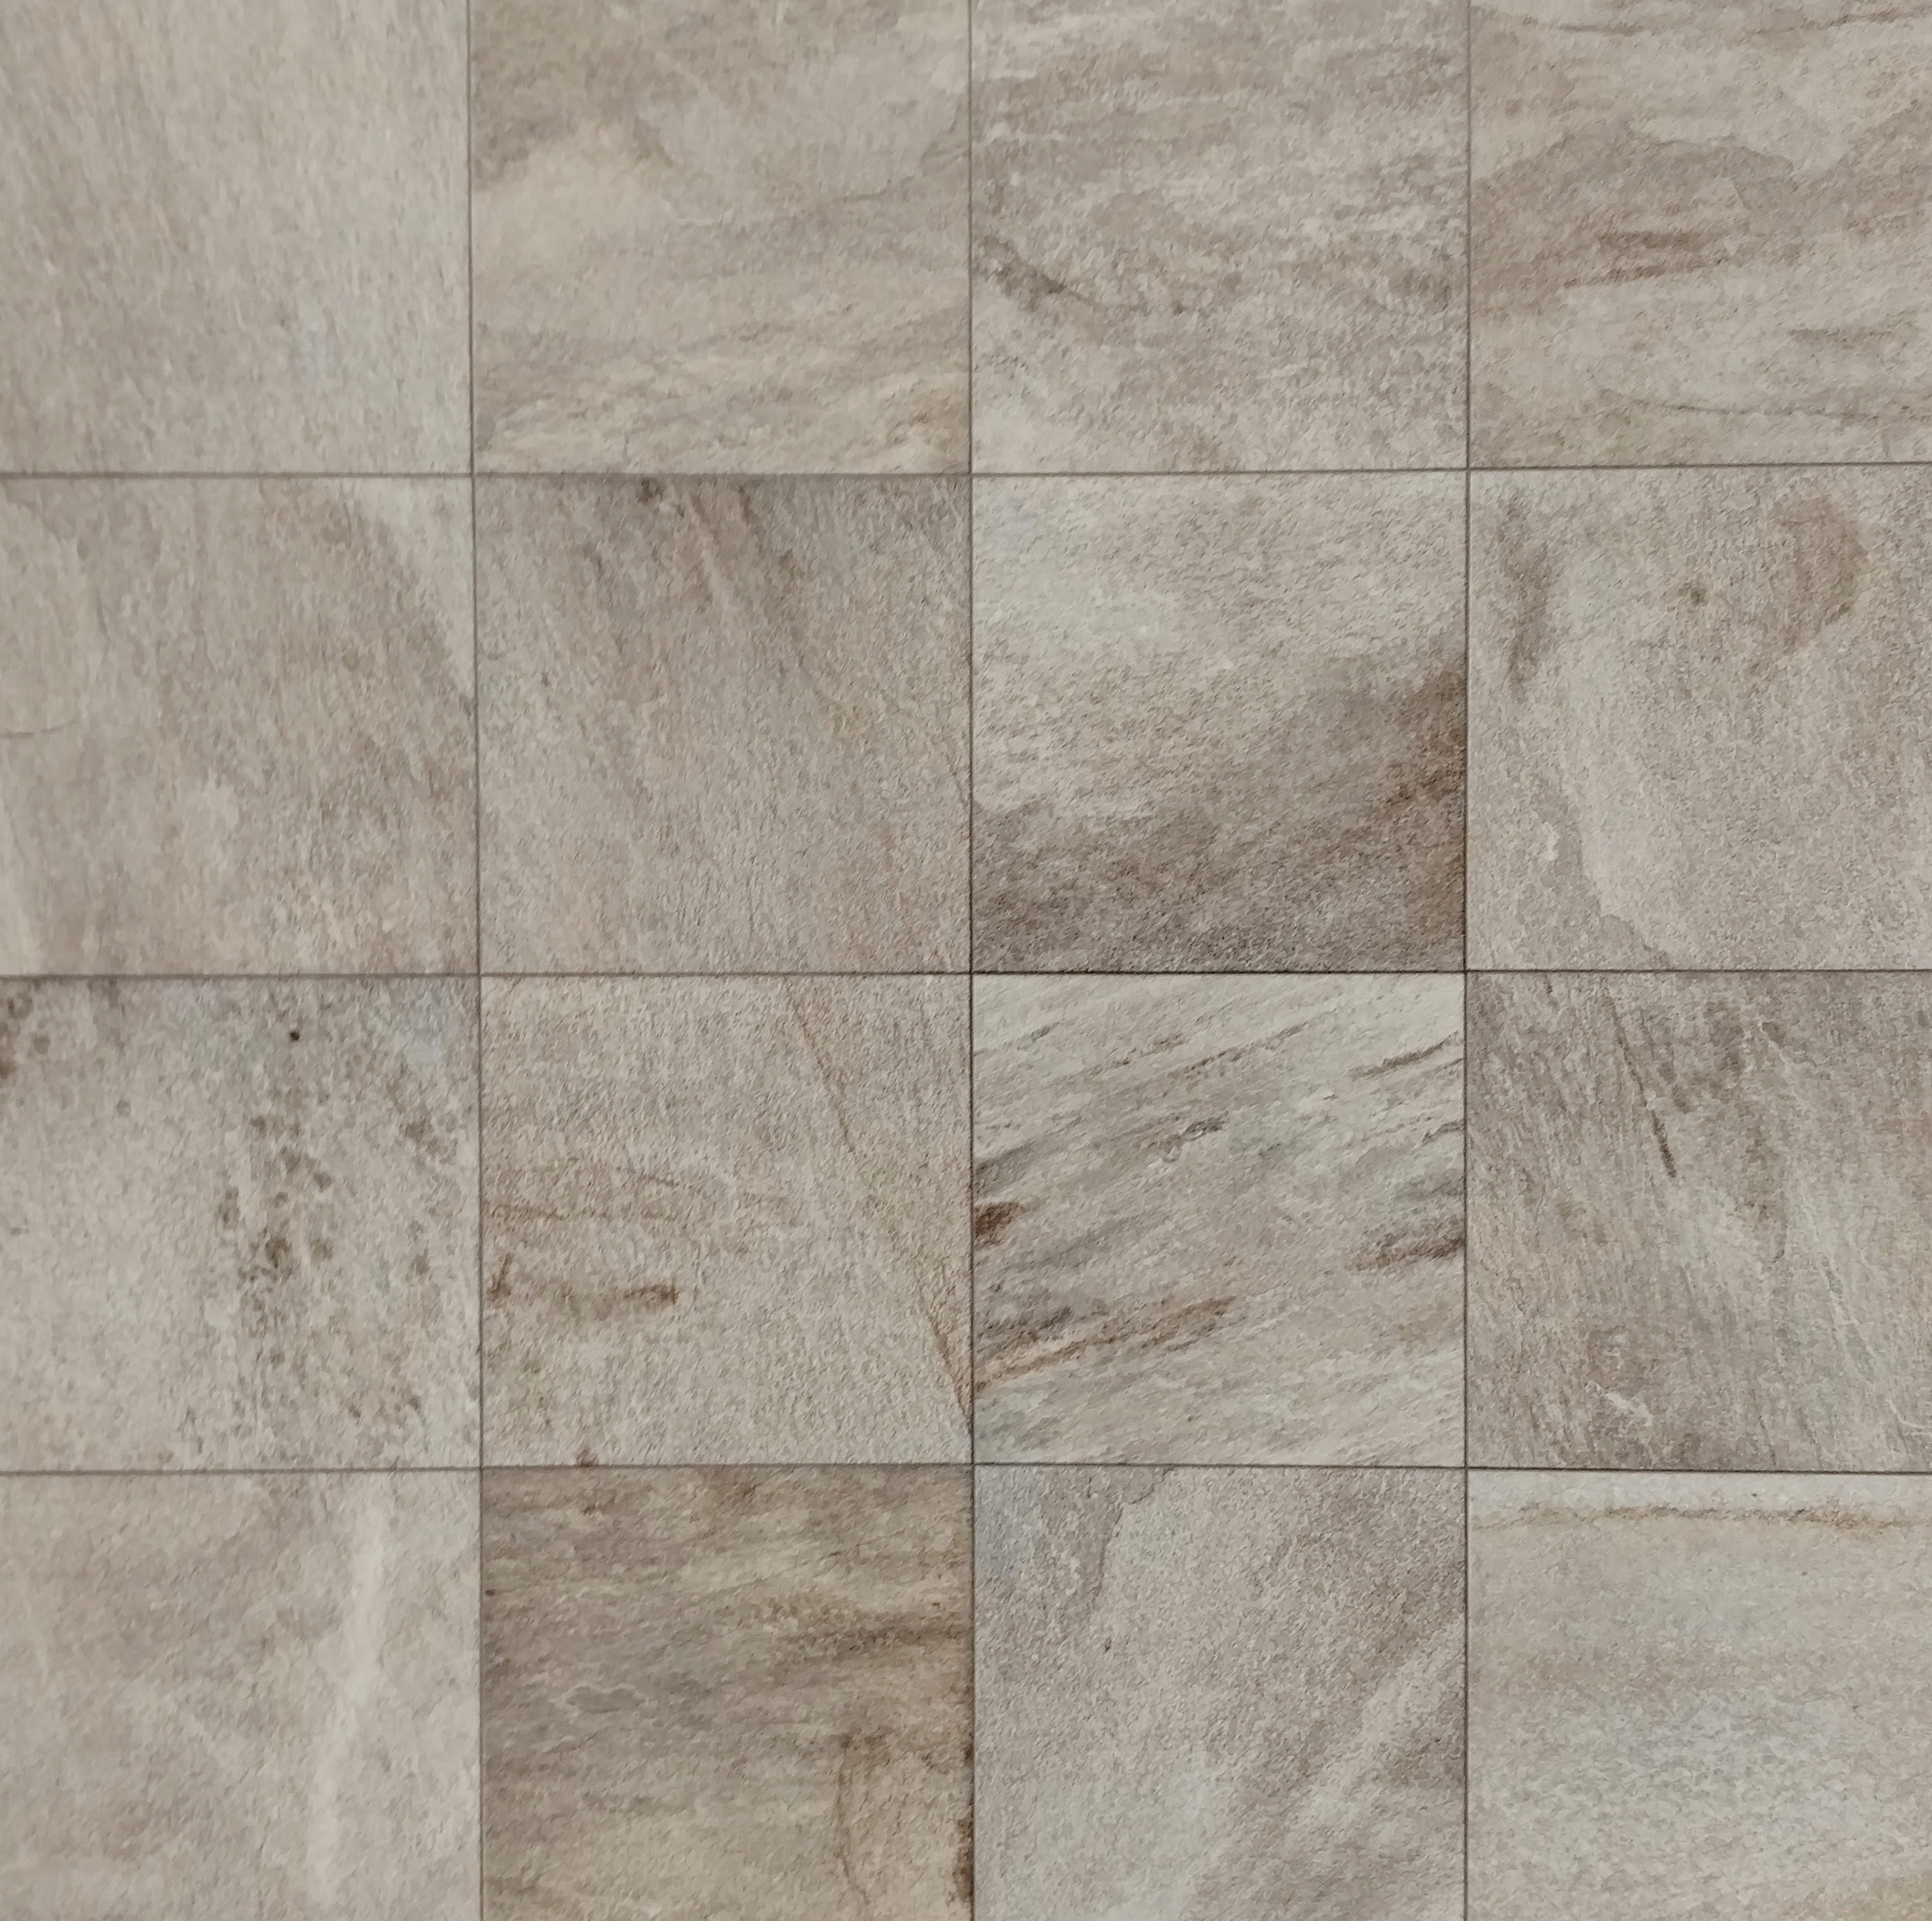 """QuartziteDiBarge  12""""x12"""" Porcelain (16 pieces shown for variation) Also available in : 6"""" x 6"""", 12"""" x 24"""", 18""""x 18"""""""